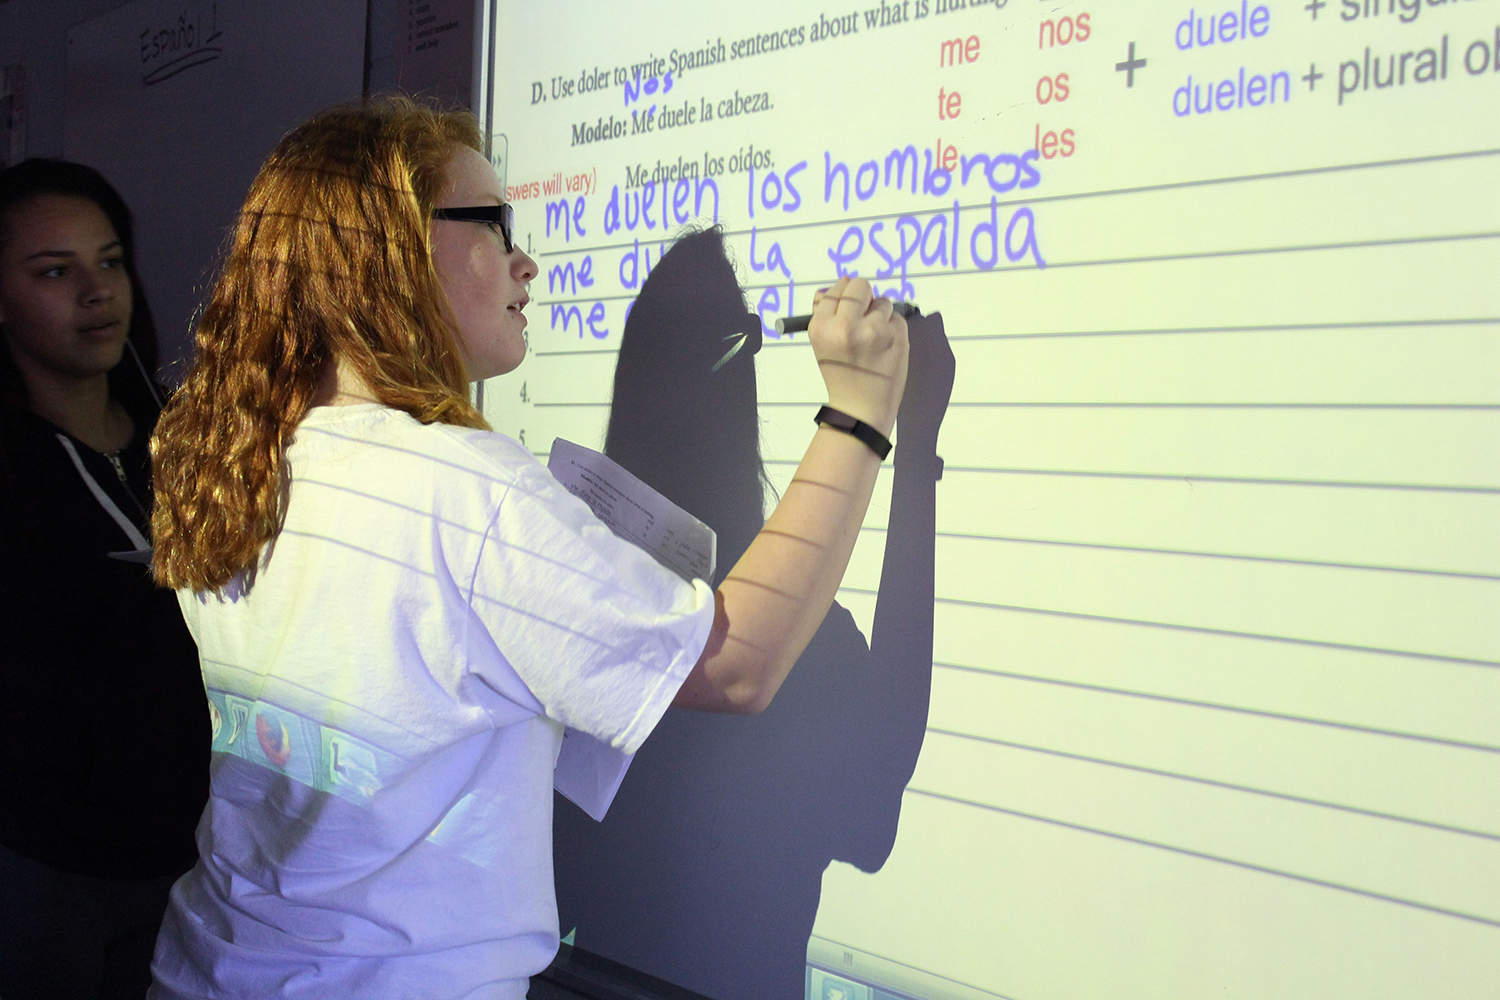 Freshman Elizabeth Cox writes a sentence in Spanish on the Smart Board while in Anelise Mossinghoff's fifth hour Spanish I class.